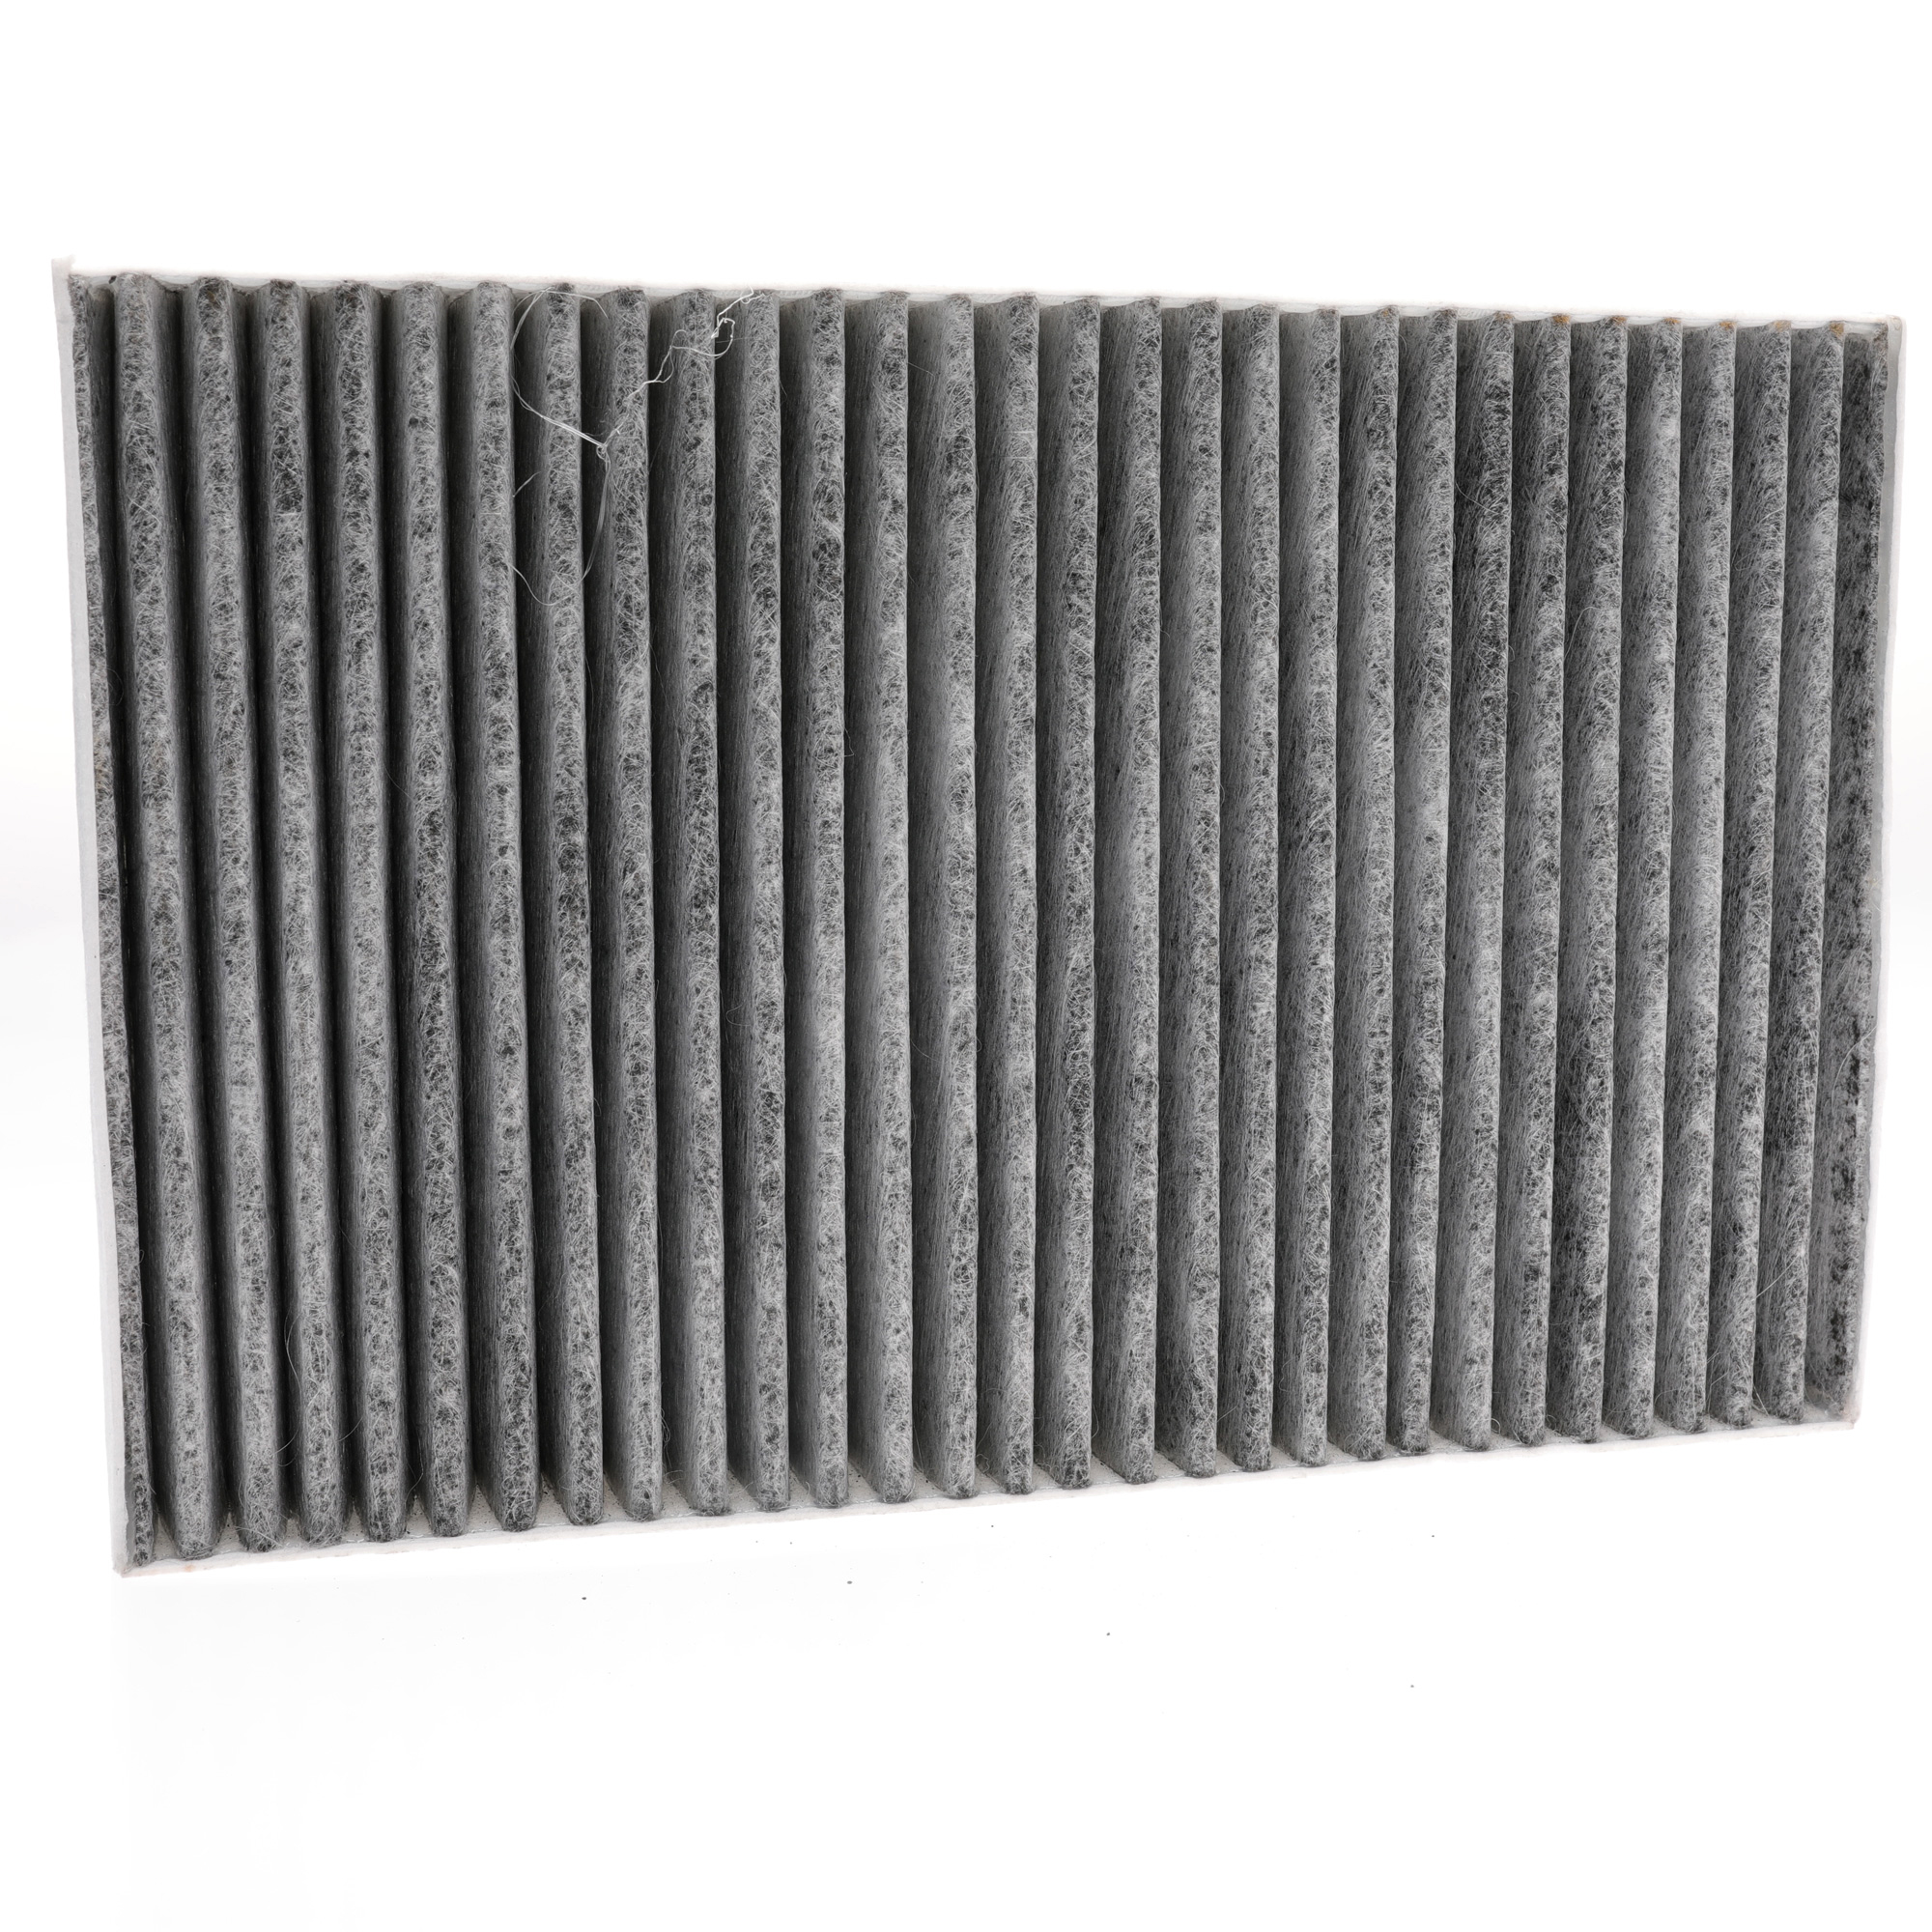 Image 5 - DEF Cabin Air Filter for Tesla Model S, Includes Activated Carbon and Soda, Guarantee Breeze Fresh Air, 2012 2015Cabin Filter   -